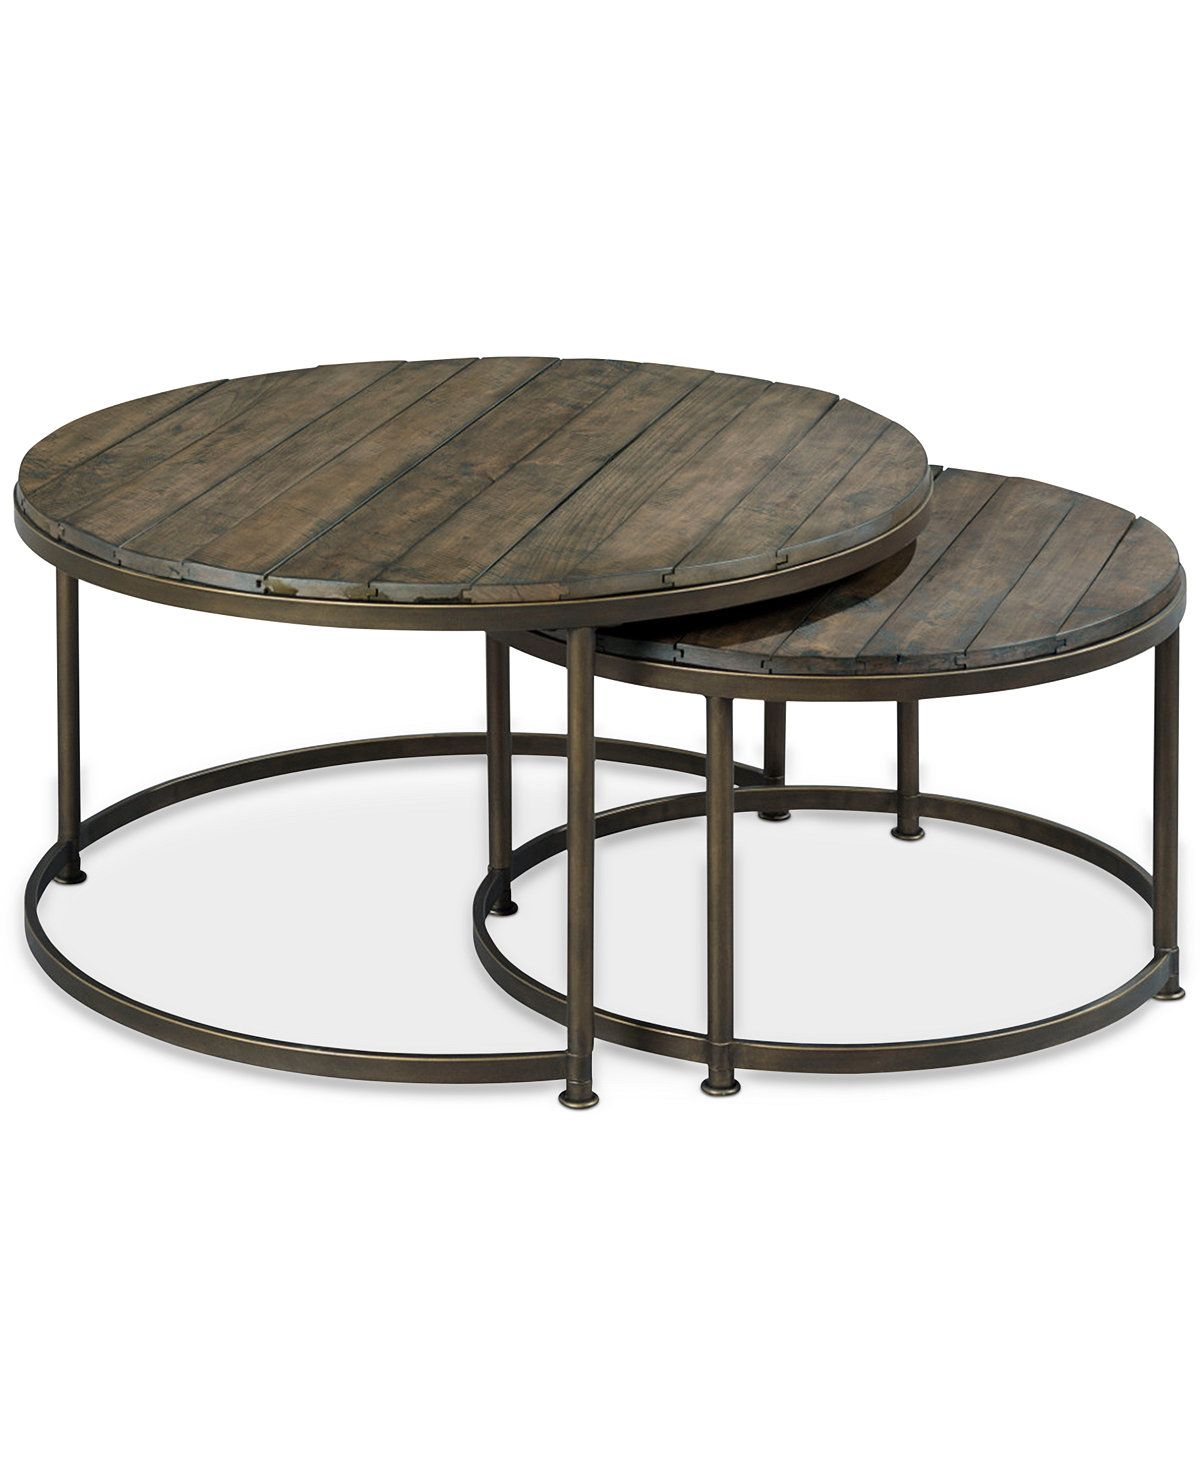 38++ Wood nesting coffee tables ideas in 2021